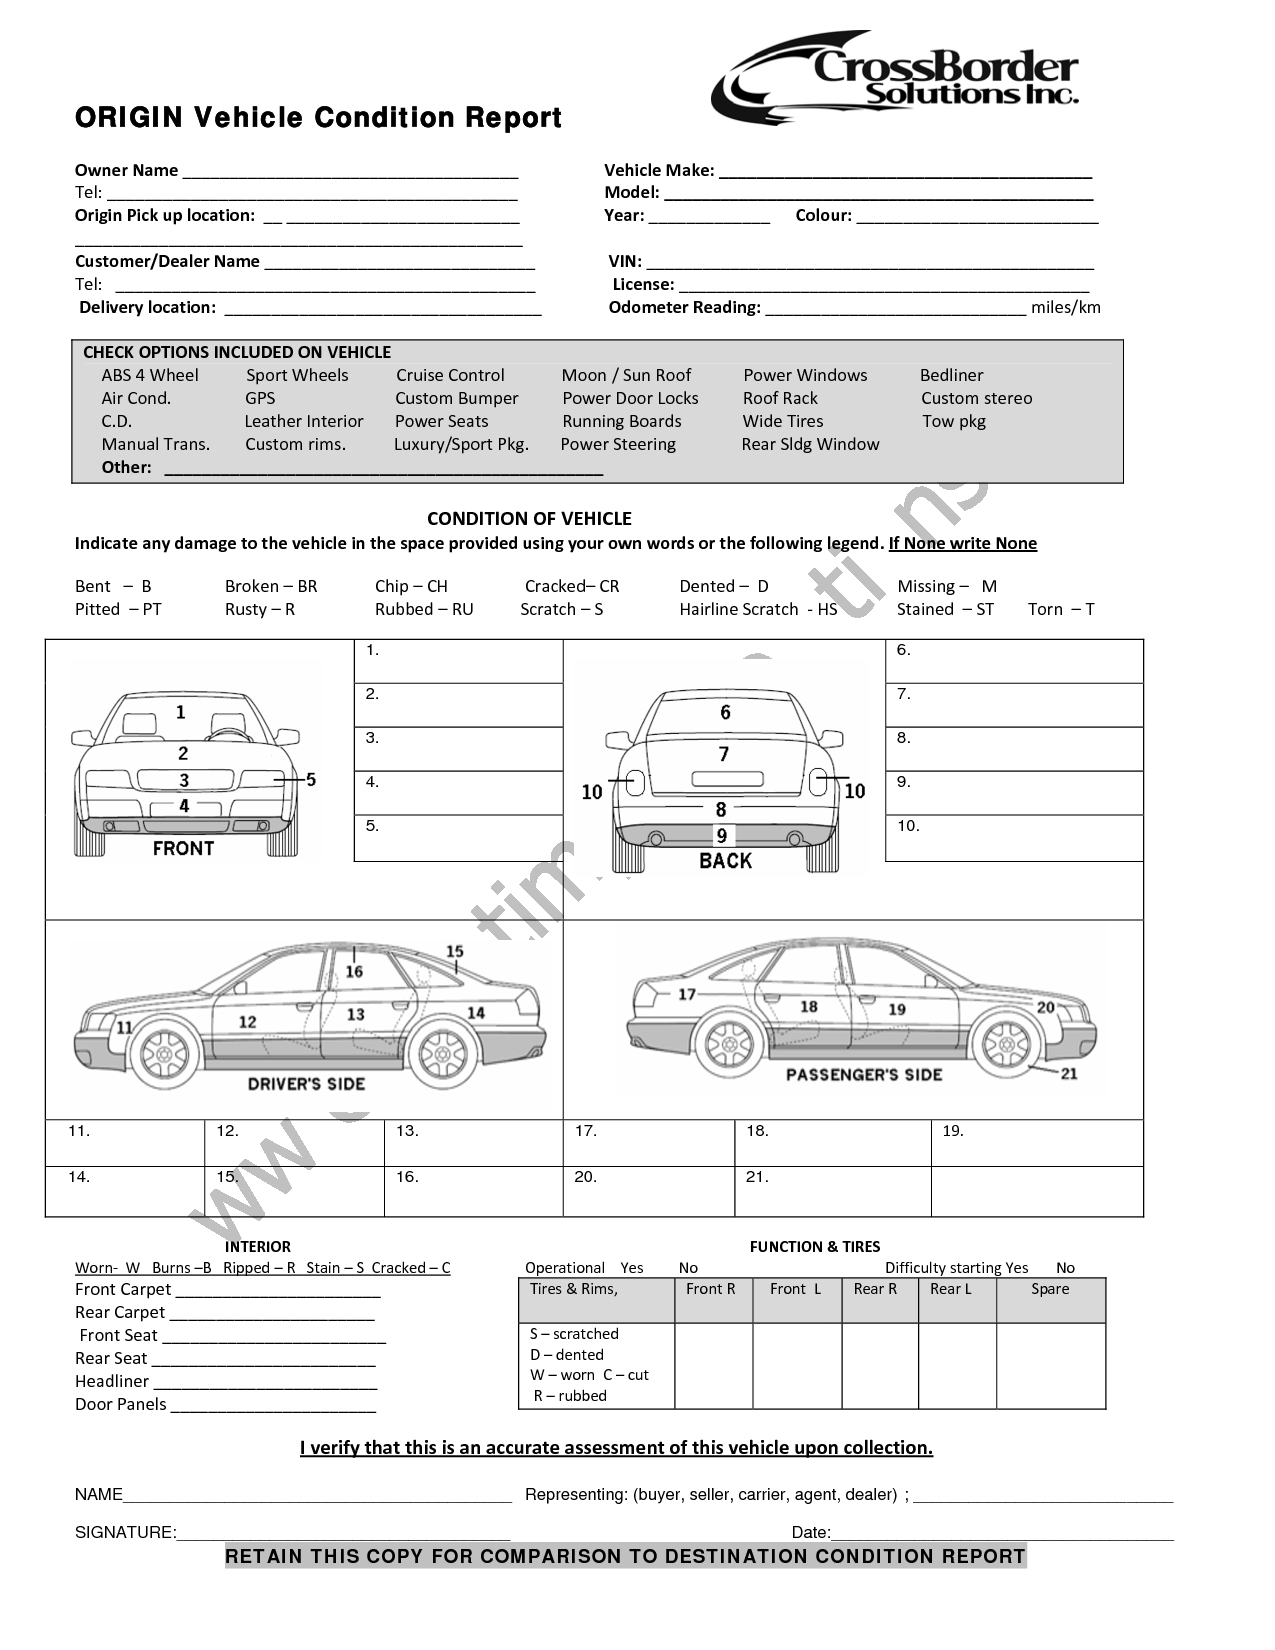 Vehicle Condition Report Templates  Word Excel Samples With Regard To Car Damage Report Template